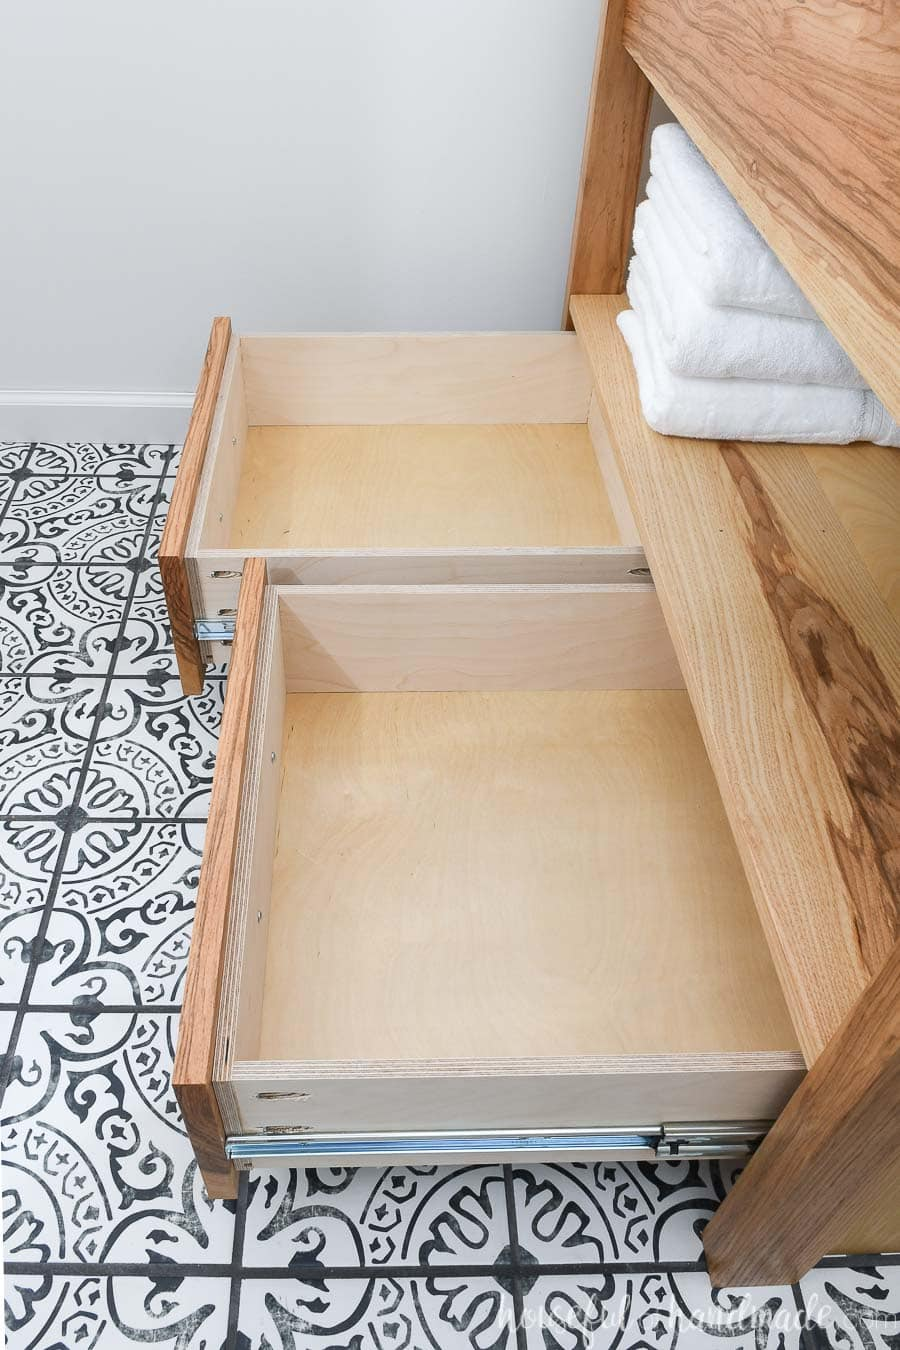 Drawers of the modern bathroom vanity open showing the storage space.